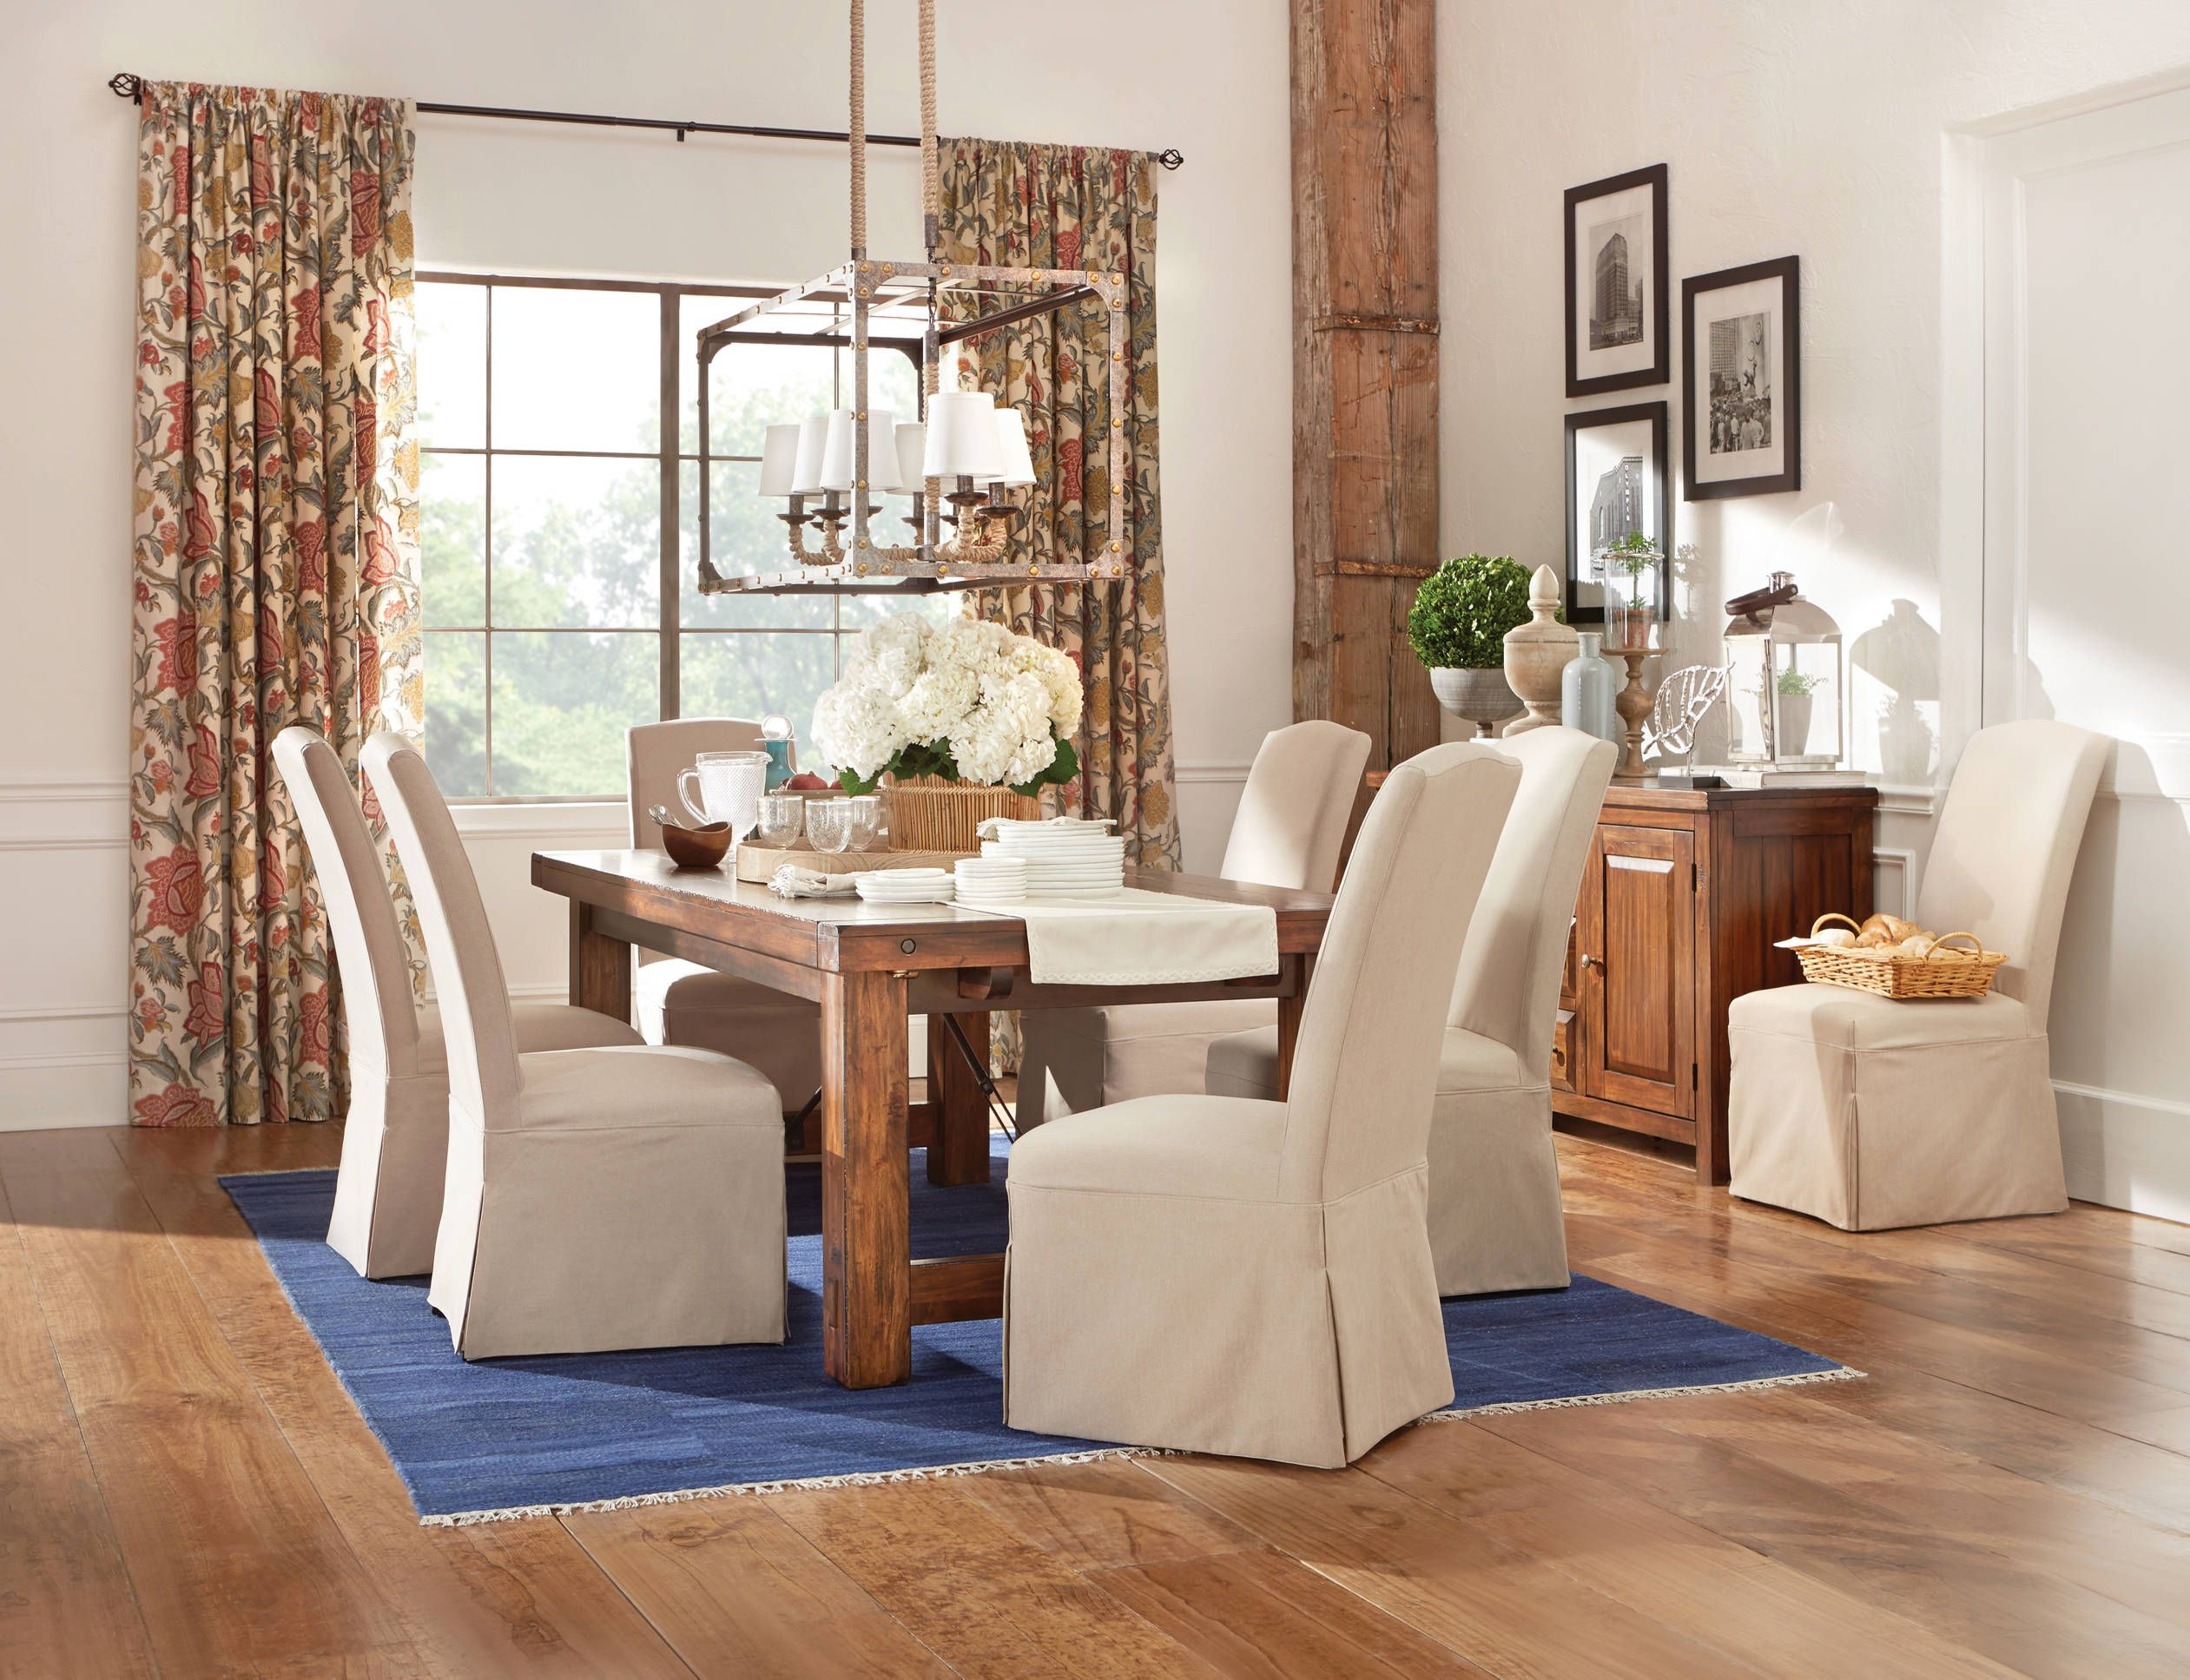 Modern rustic dining room table  The urban Tuscany Dining Collection features the best of rustic and